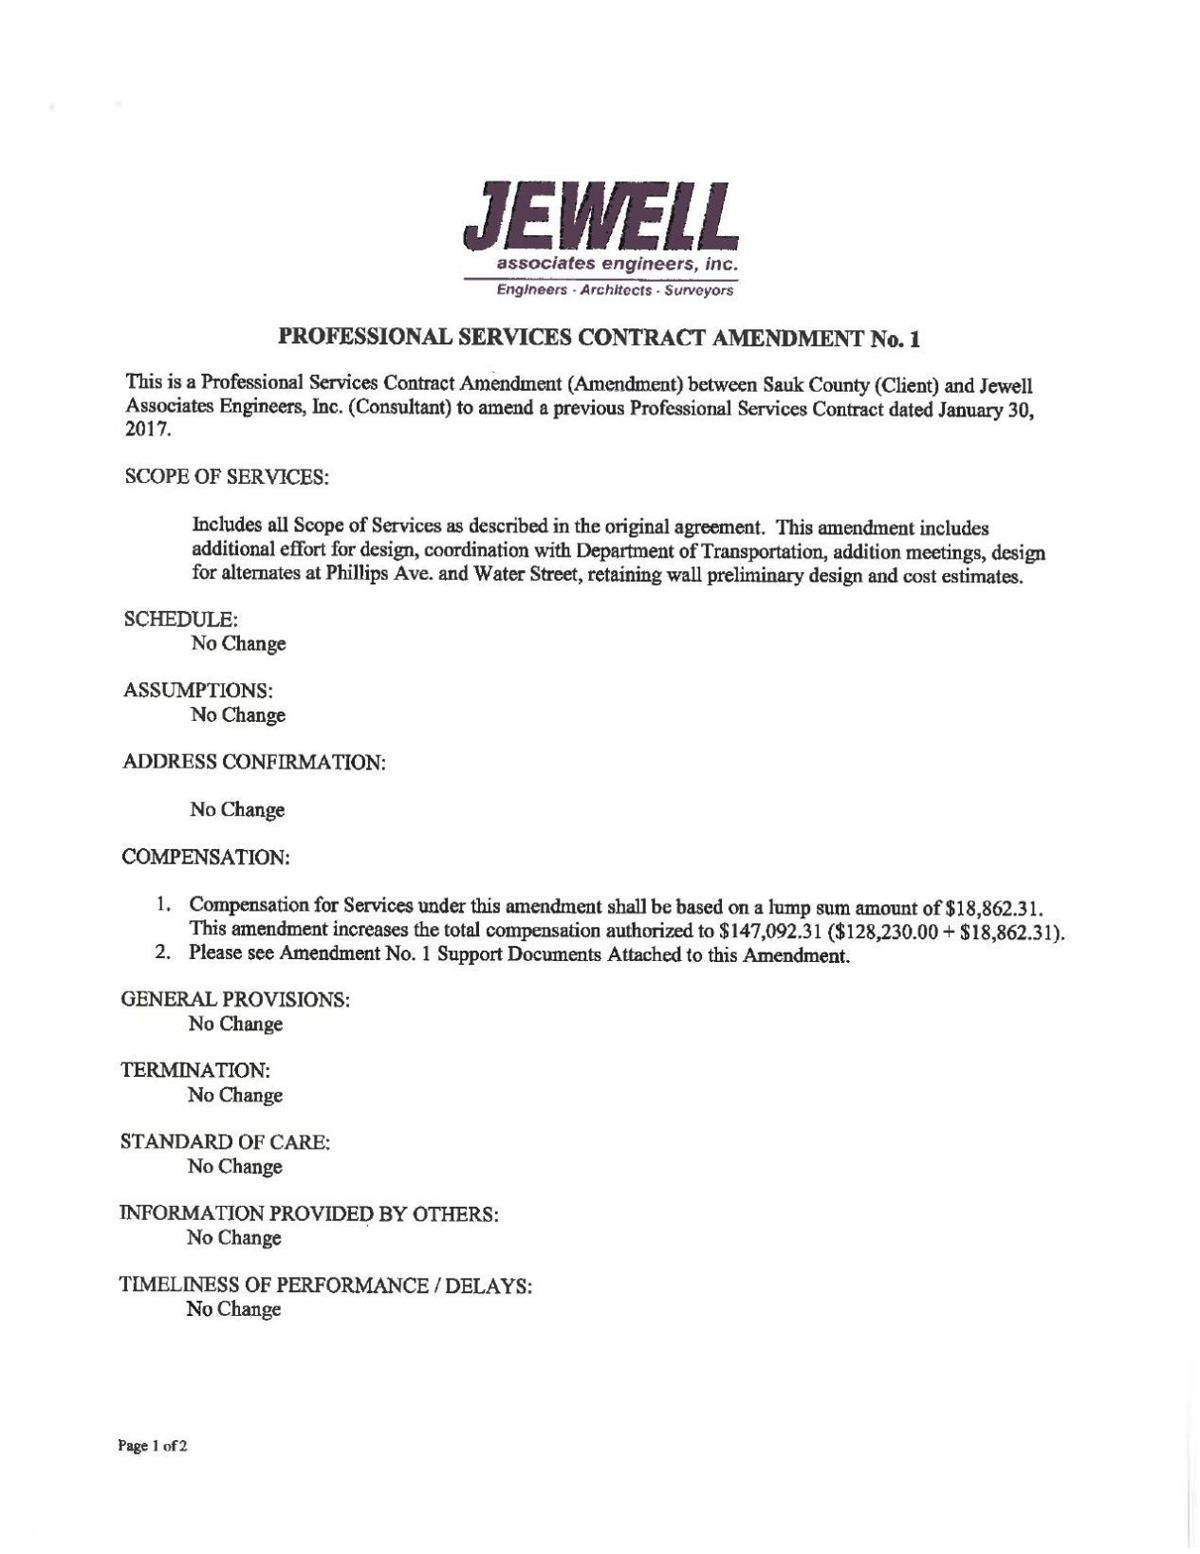 Jewell Associates Engineers contract amendment 1